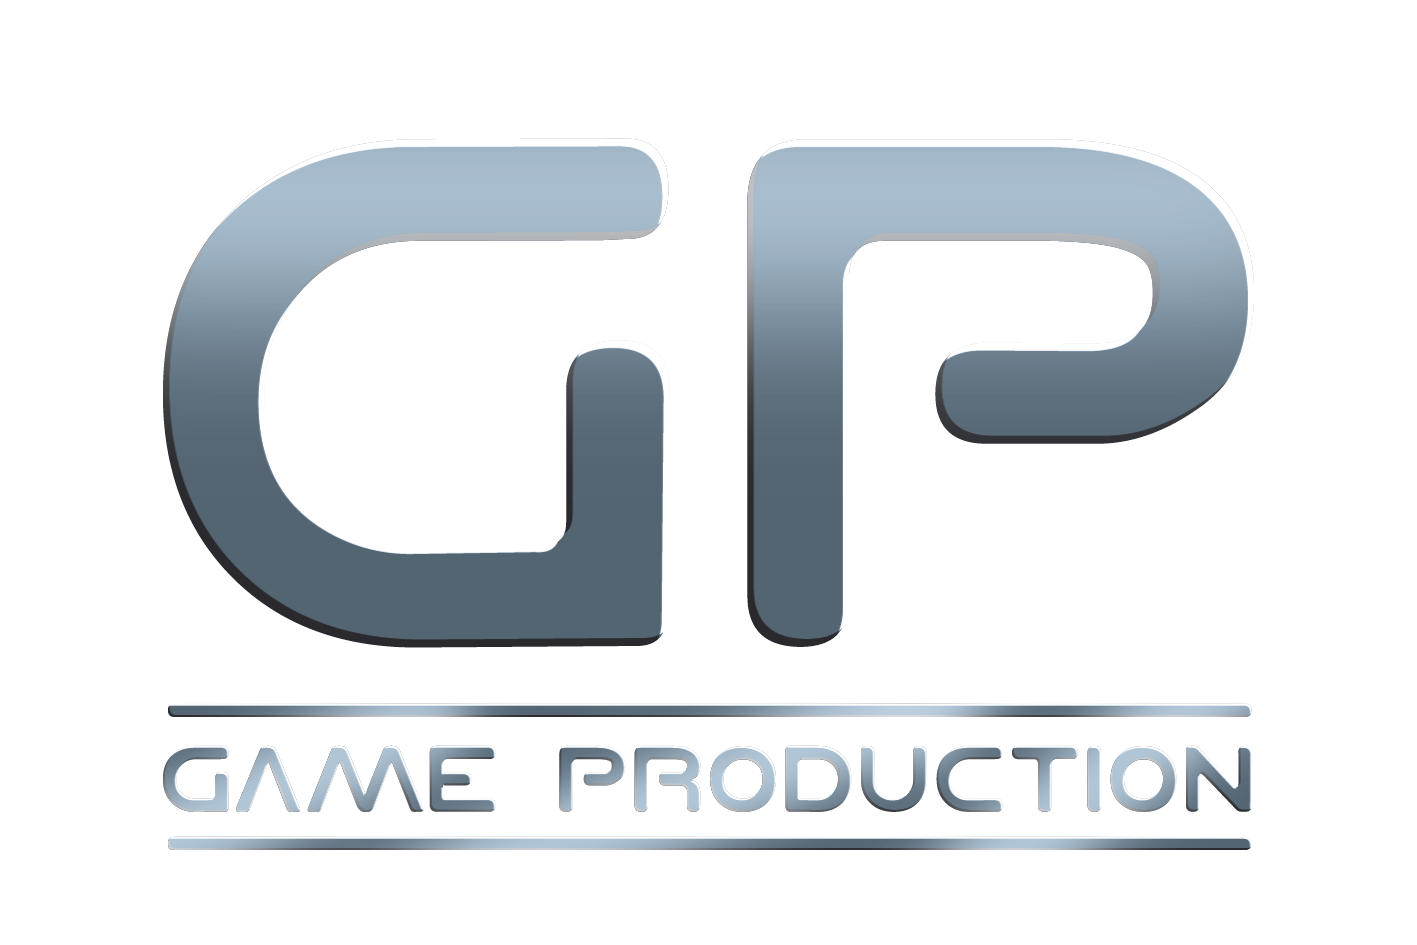 GP GAME PRODUCTION